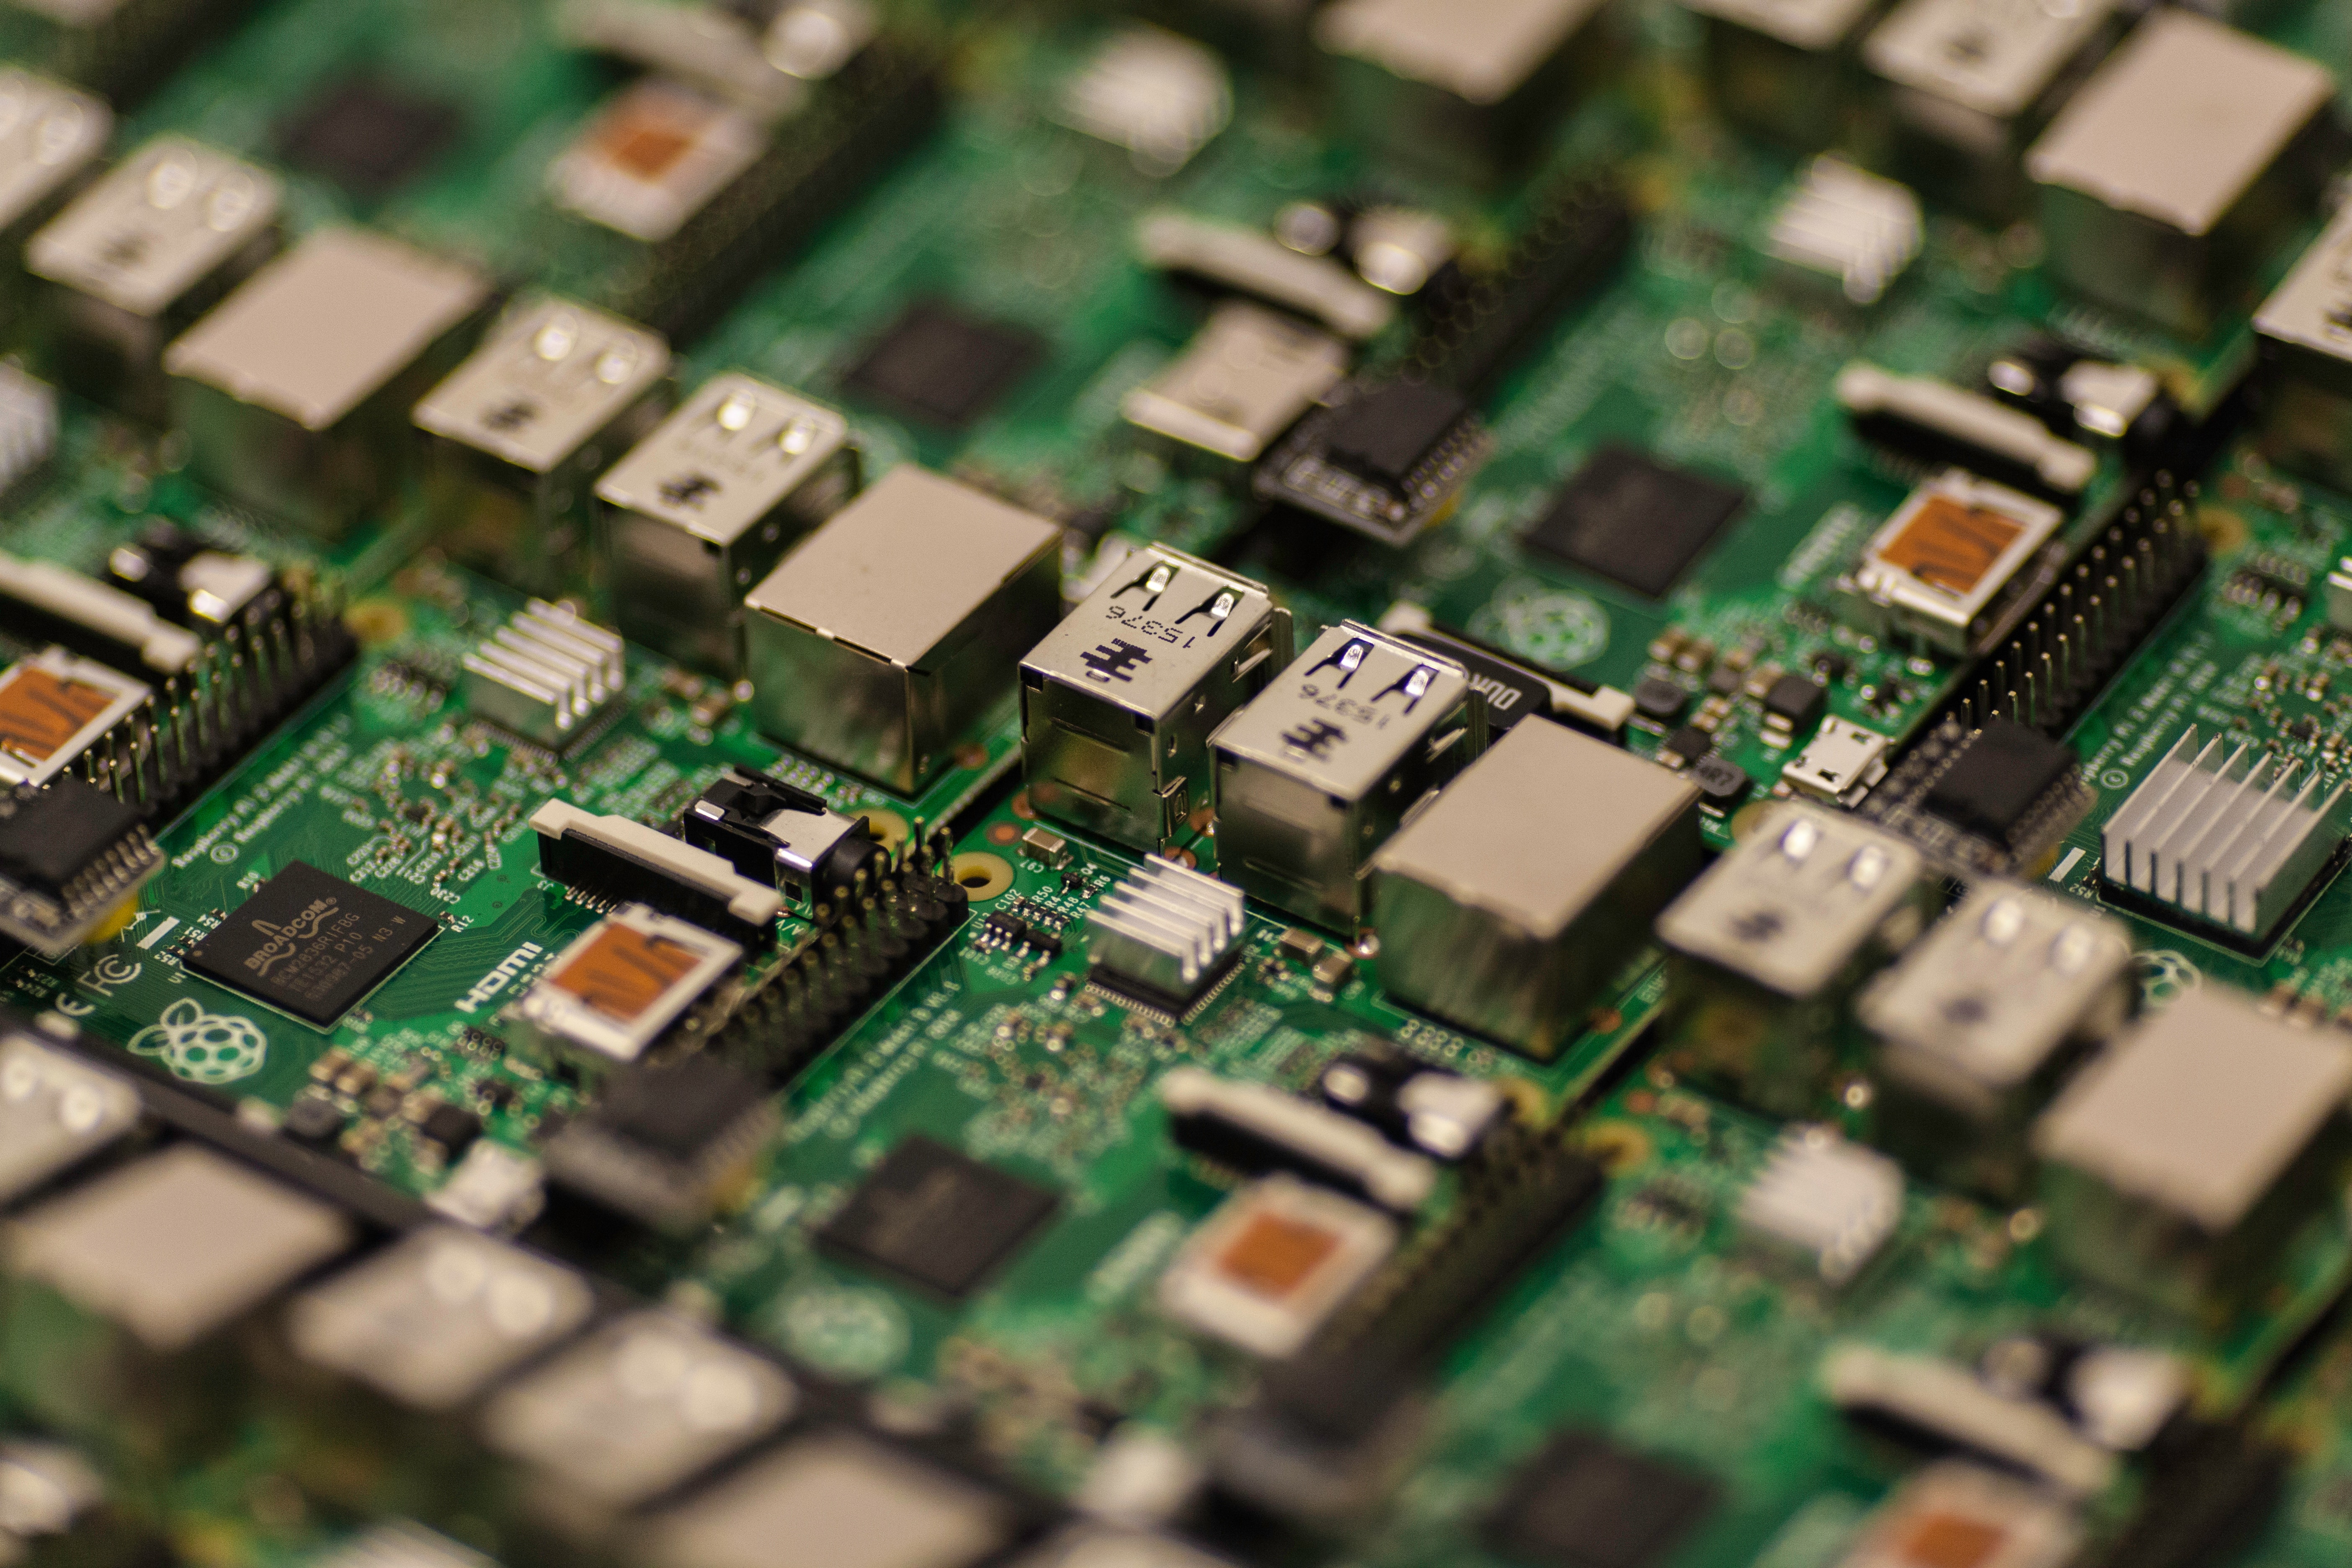 500 Amazing Circuit Board Photos Pexels Free Stock Picture Of A Green And Grey Craig Dennis